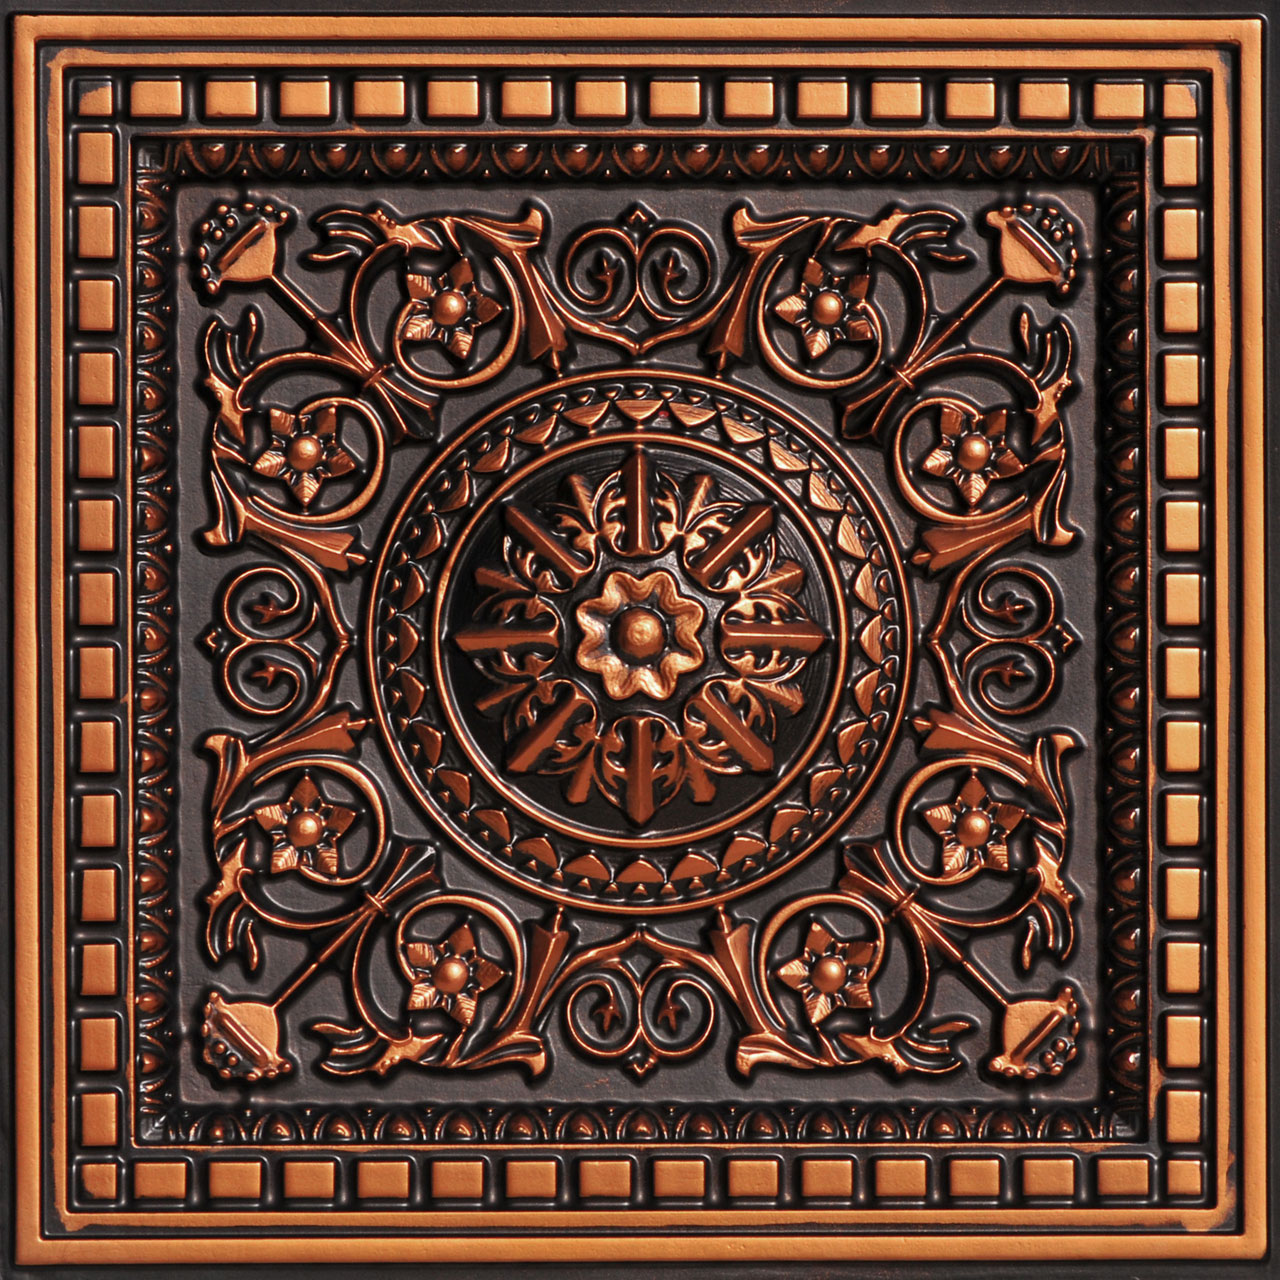 Da Vinci - Faux Tin - Coffered Ceiling Tile - Drop in - 24 in x 24 in - #215